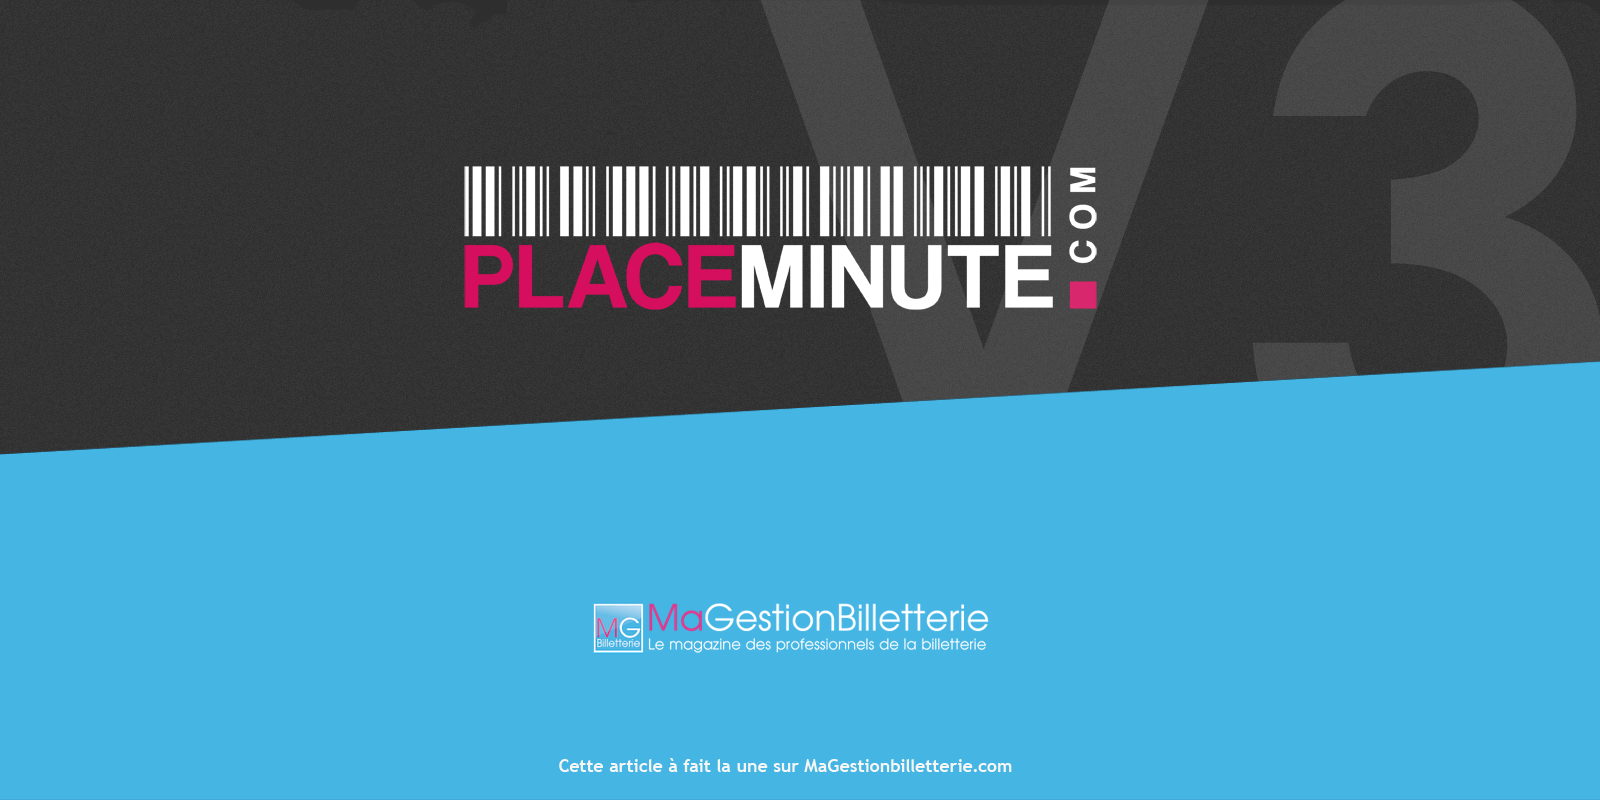 placeminuteV3-une